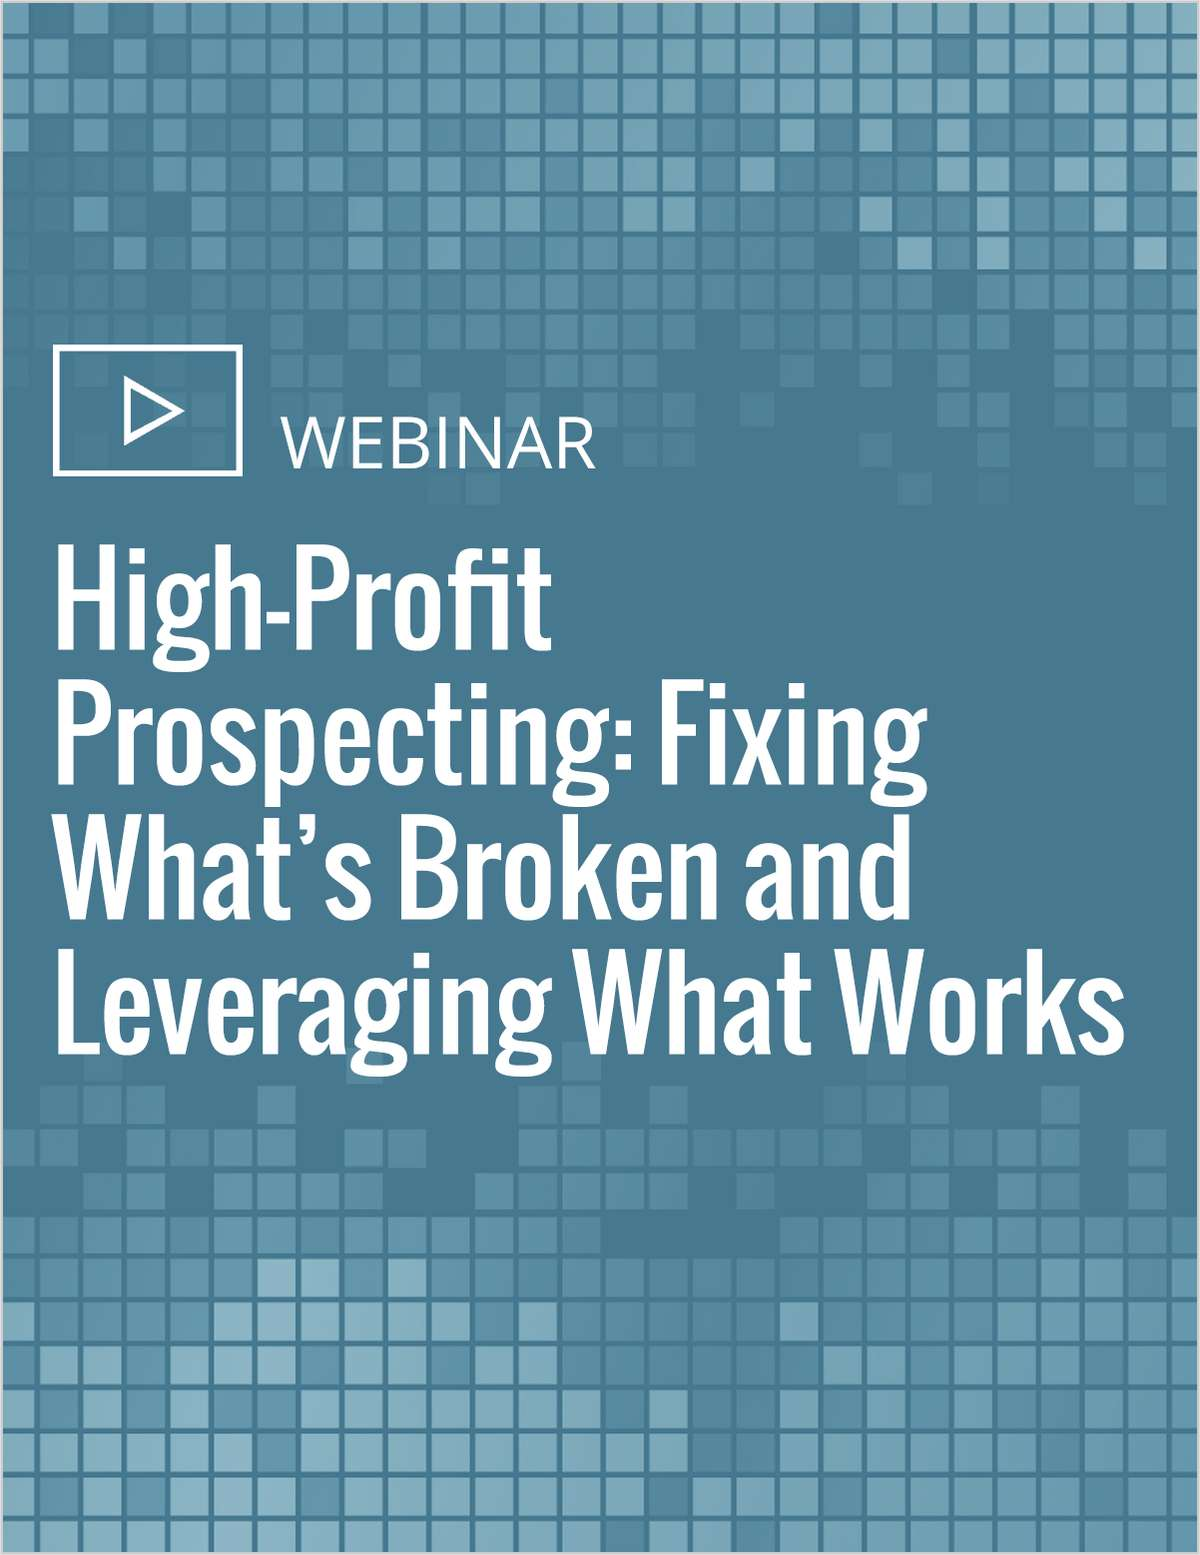 High-Profit Prospecting: Fixing What's Broken and Leveraging What Works